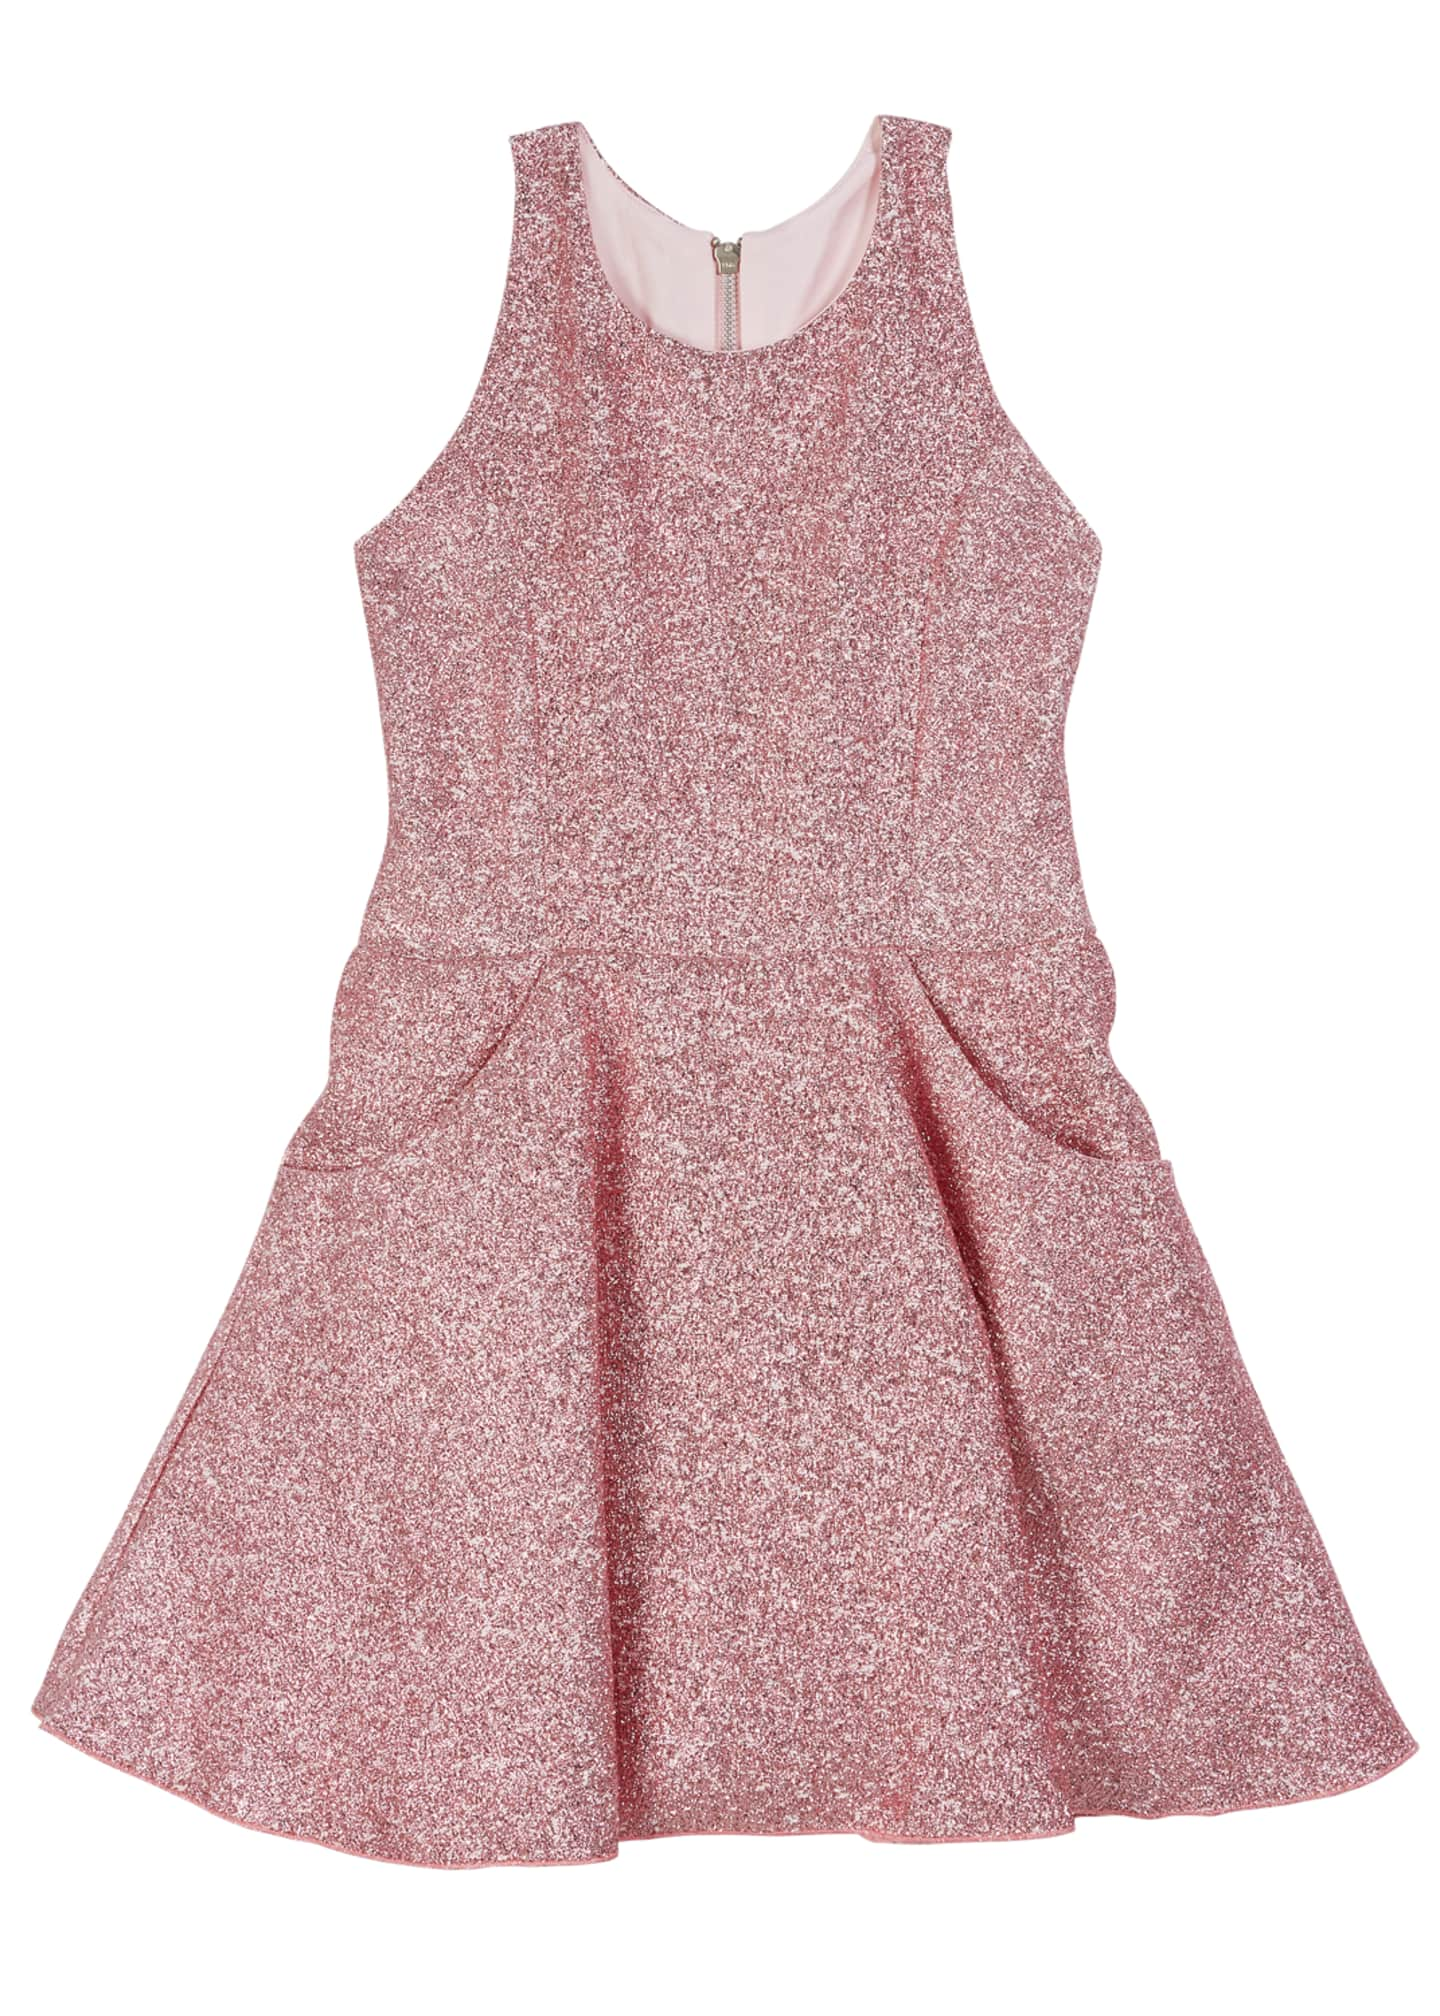 Zoe Danica Metallic Jacquard Pocket Swing Dress, Size